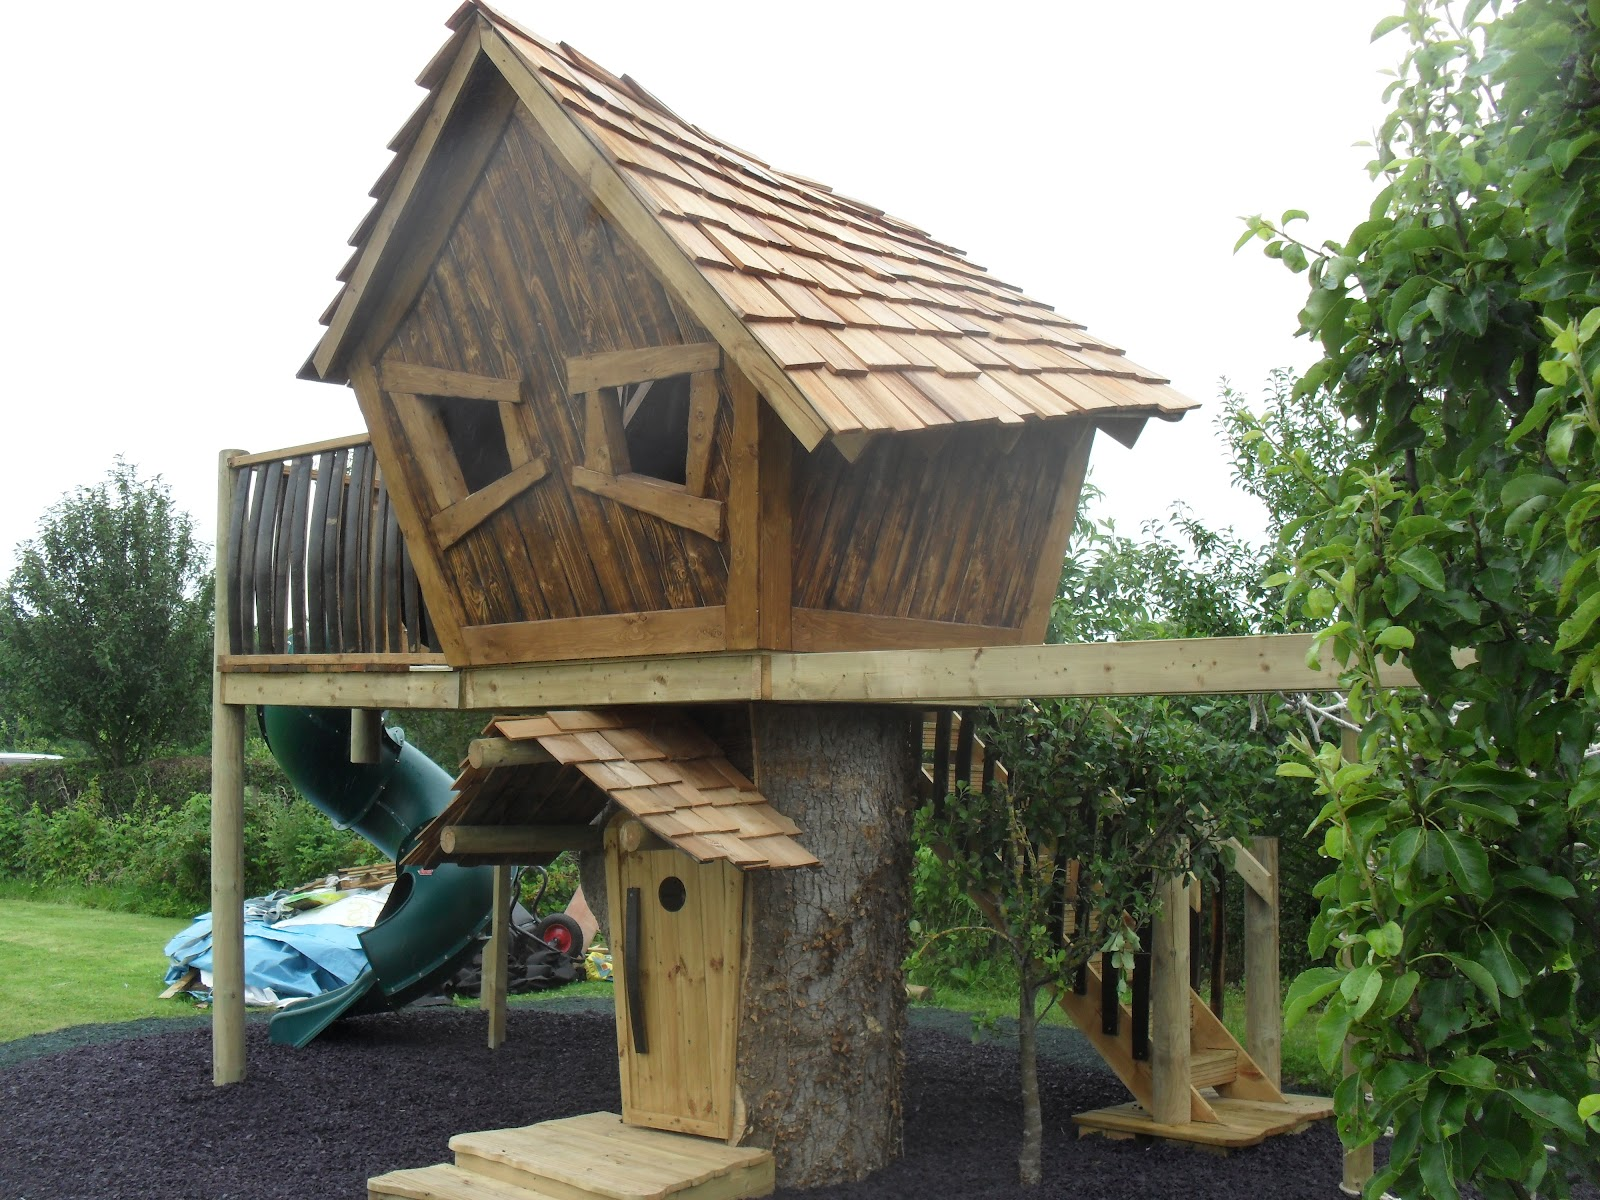 Enchanted Tree House Enchanted Creations Playhouses